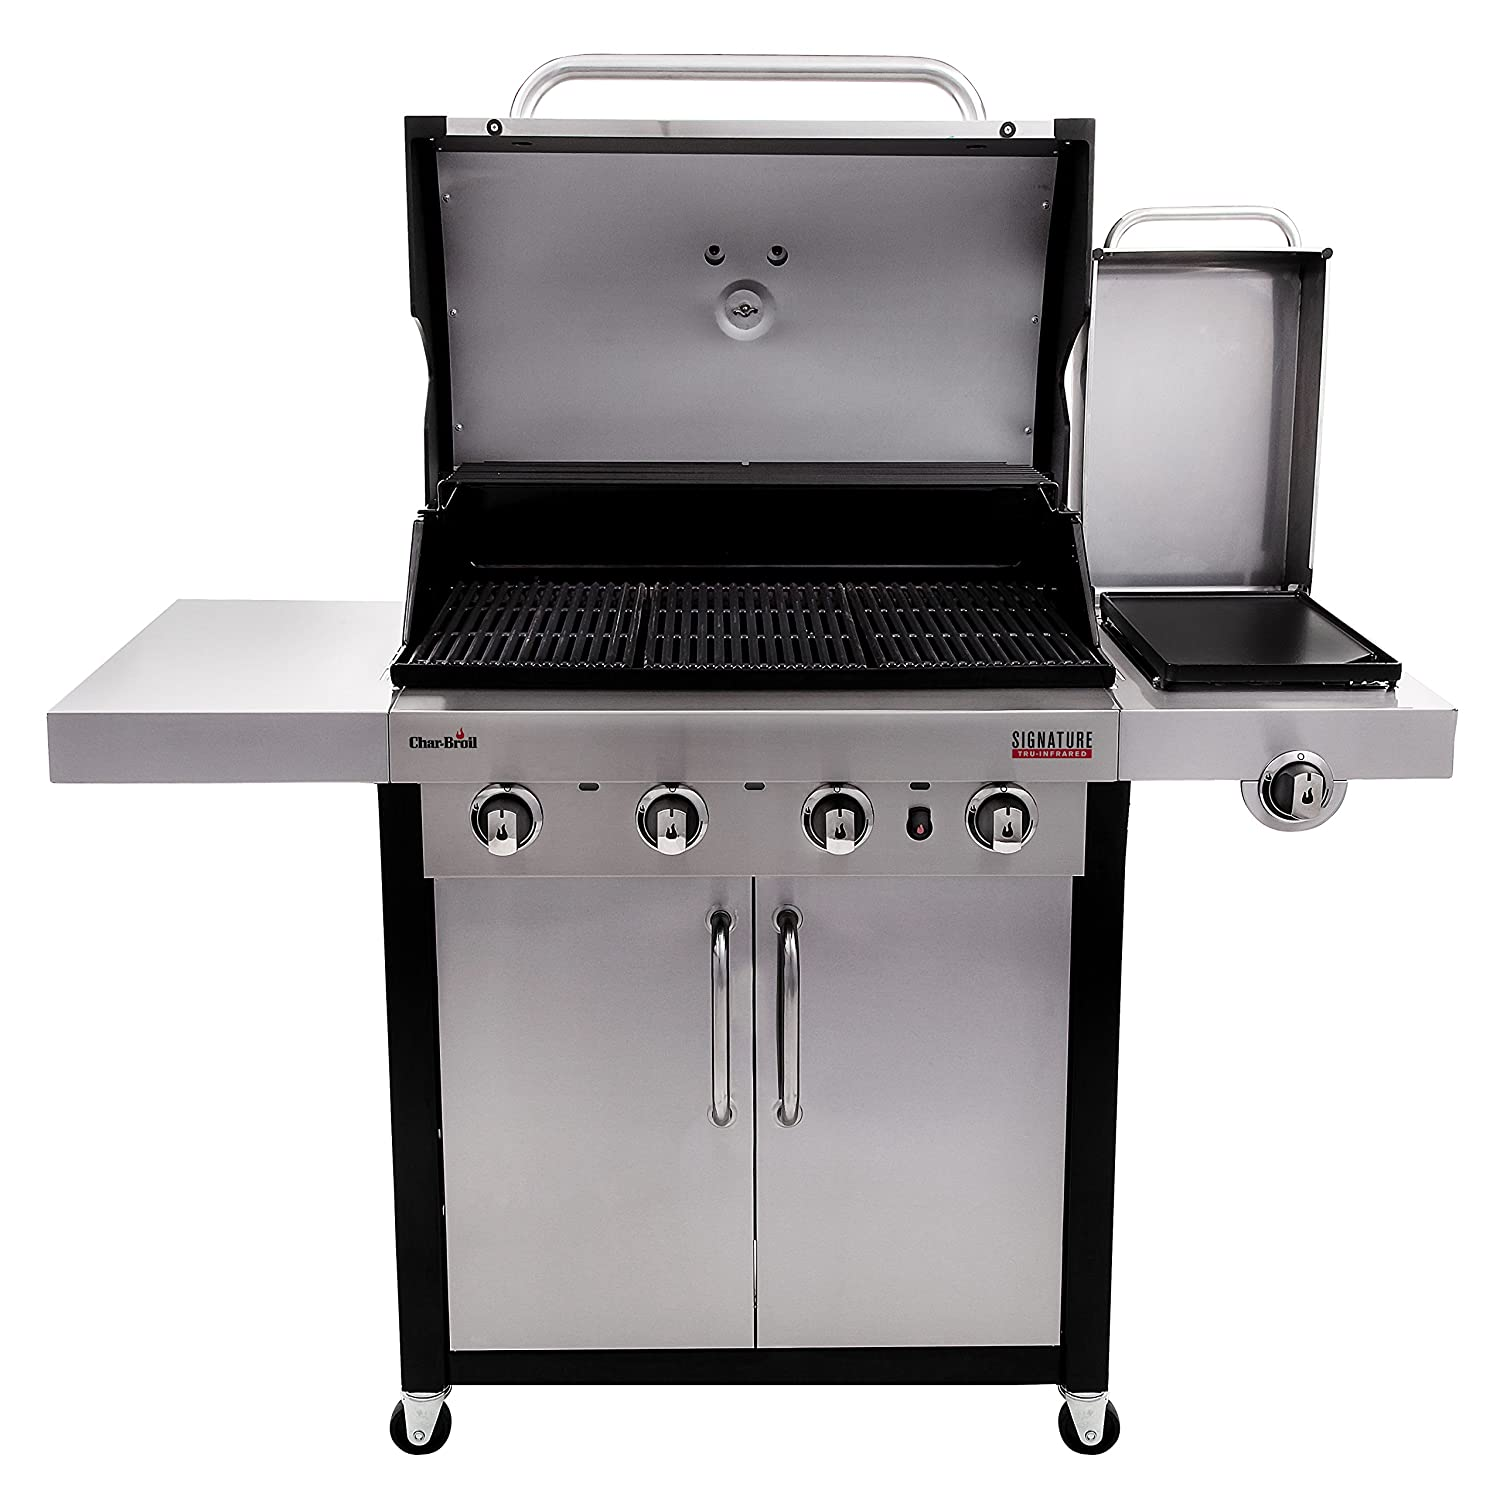 Char broil commercial series gas grill - Amazon Com Char Broil Signature Tru Infrared 4 Burner Cabinet Gas Grill Garden Outdoor